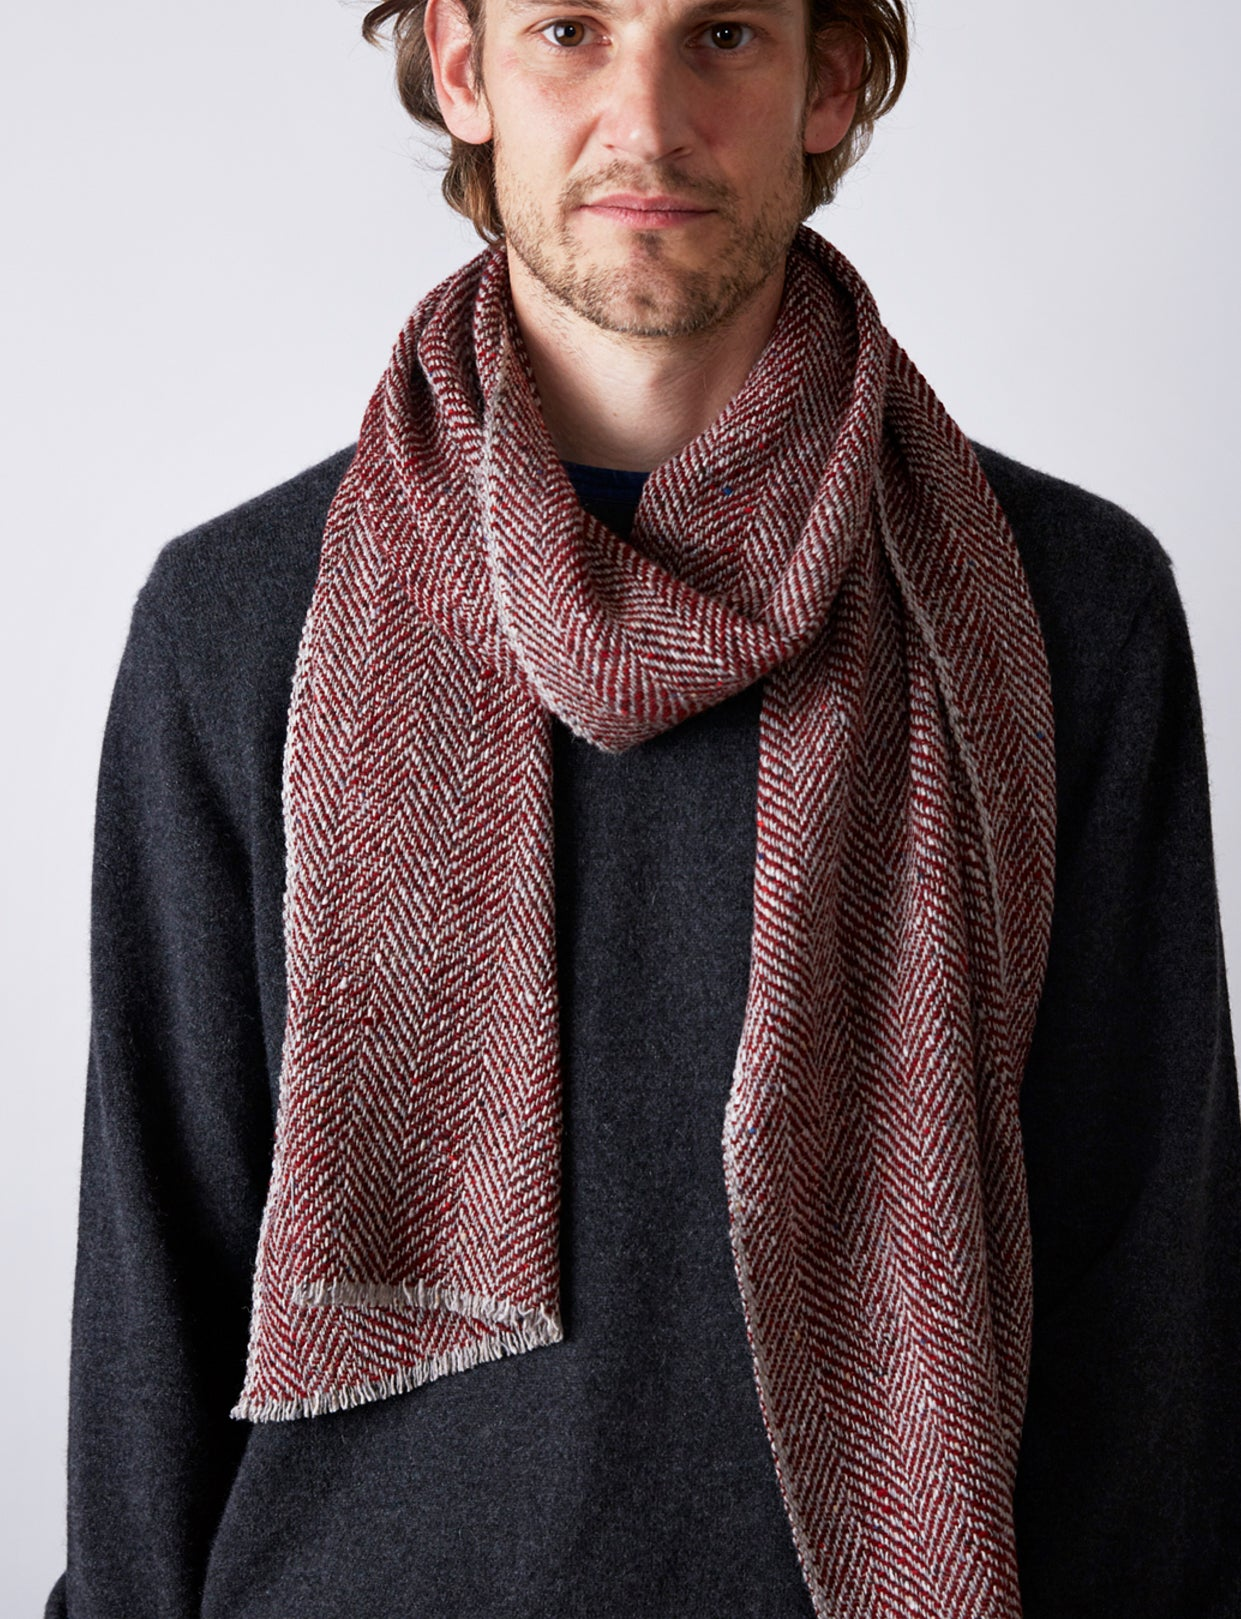 Textured Herringbone Scarf - Red / Grey - Narrow